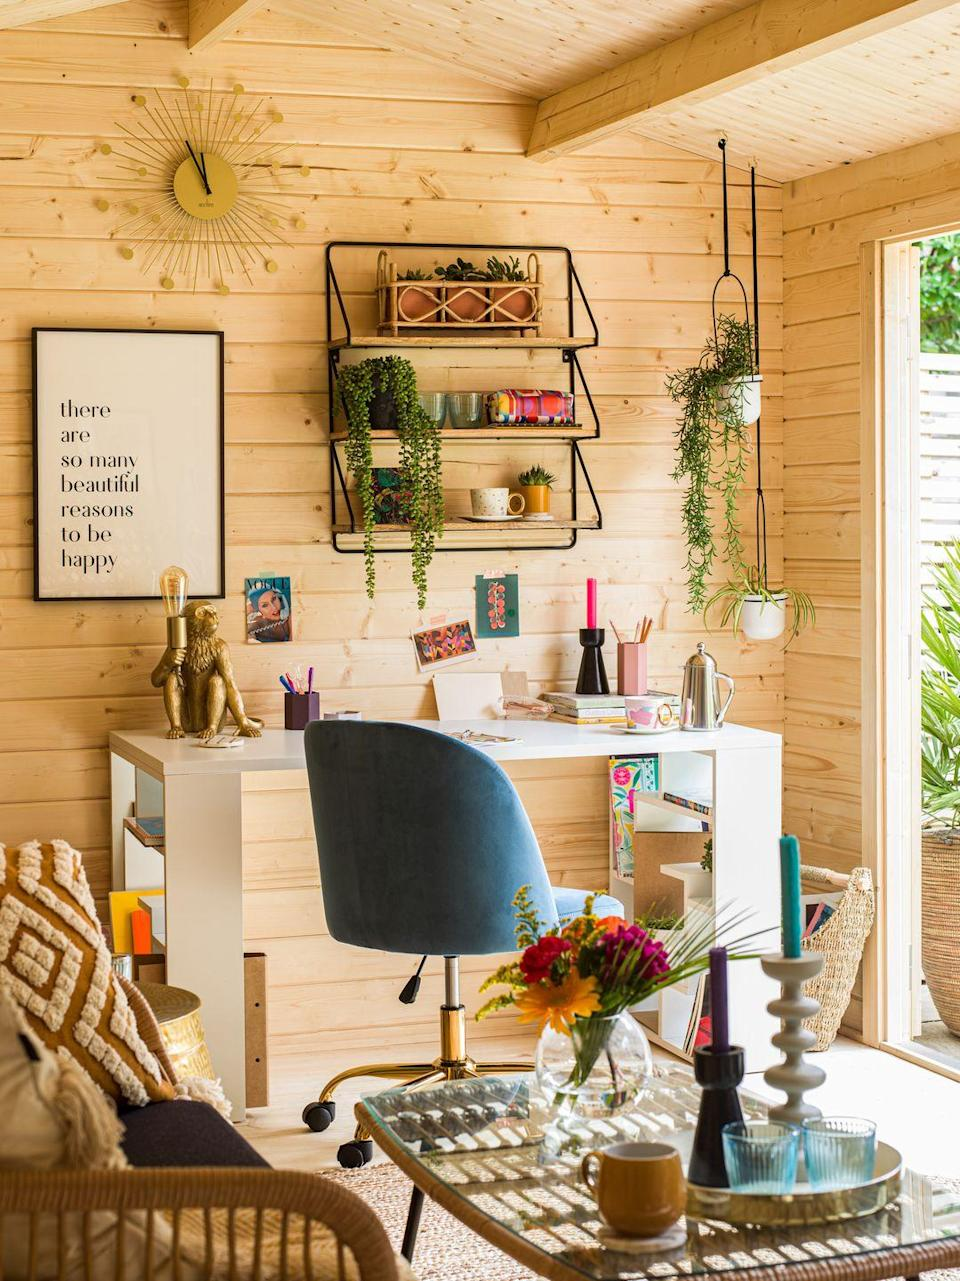 """<p>AJ has combined uplifting artwork with fun prints and quirky eye-catchers such as the <a href=""""https://go.redirectingat.com?id=127X1599956&url=https%3A%2F%2Fwww.wayfair.co.uk%2Flighting%2Fpdp%2Fworld-menagerie-marisha-32cm-table-lamp-msun6793.html%3Fpiid%3D40079204&sref=https%3A%2F%2Fwww.housebeautiful.com%2Fuk%2Fgarden%2Fg36462362%2Faj-odudu-garden-summer-house%2F"""" rel=""""nofollow noopener"""" target=""""_blank"""" data-ylk=""""slk:monkey table lamp"""" class=""""link rapid-noclick-resp"""">monkey table lamp</a>. 'For wall art you can update easily, hang up magazine clippings, postcards or prints with masking tape,' suggests Nadia McCowan Hill, Wayfair's resident style expert.</p>"""